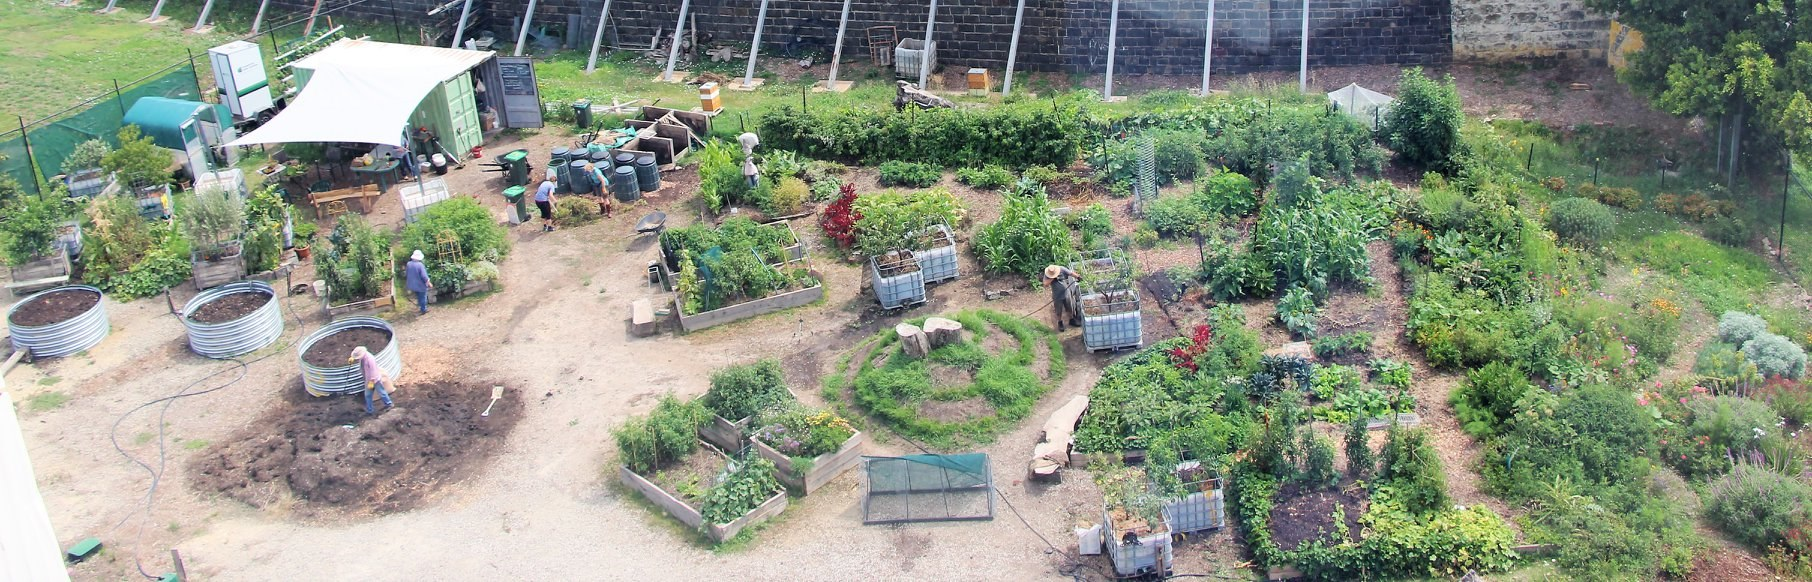 Bird's eye view of Pentridge Community Garden